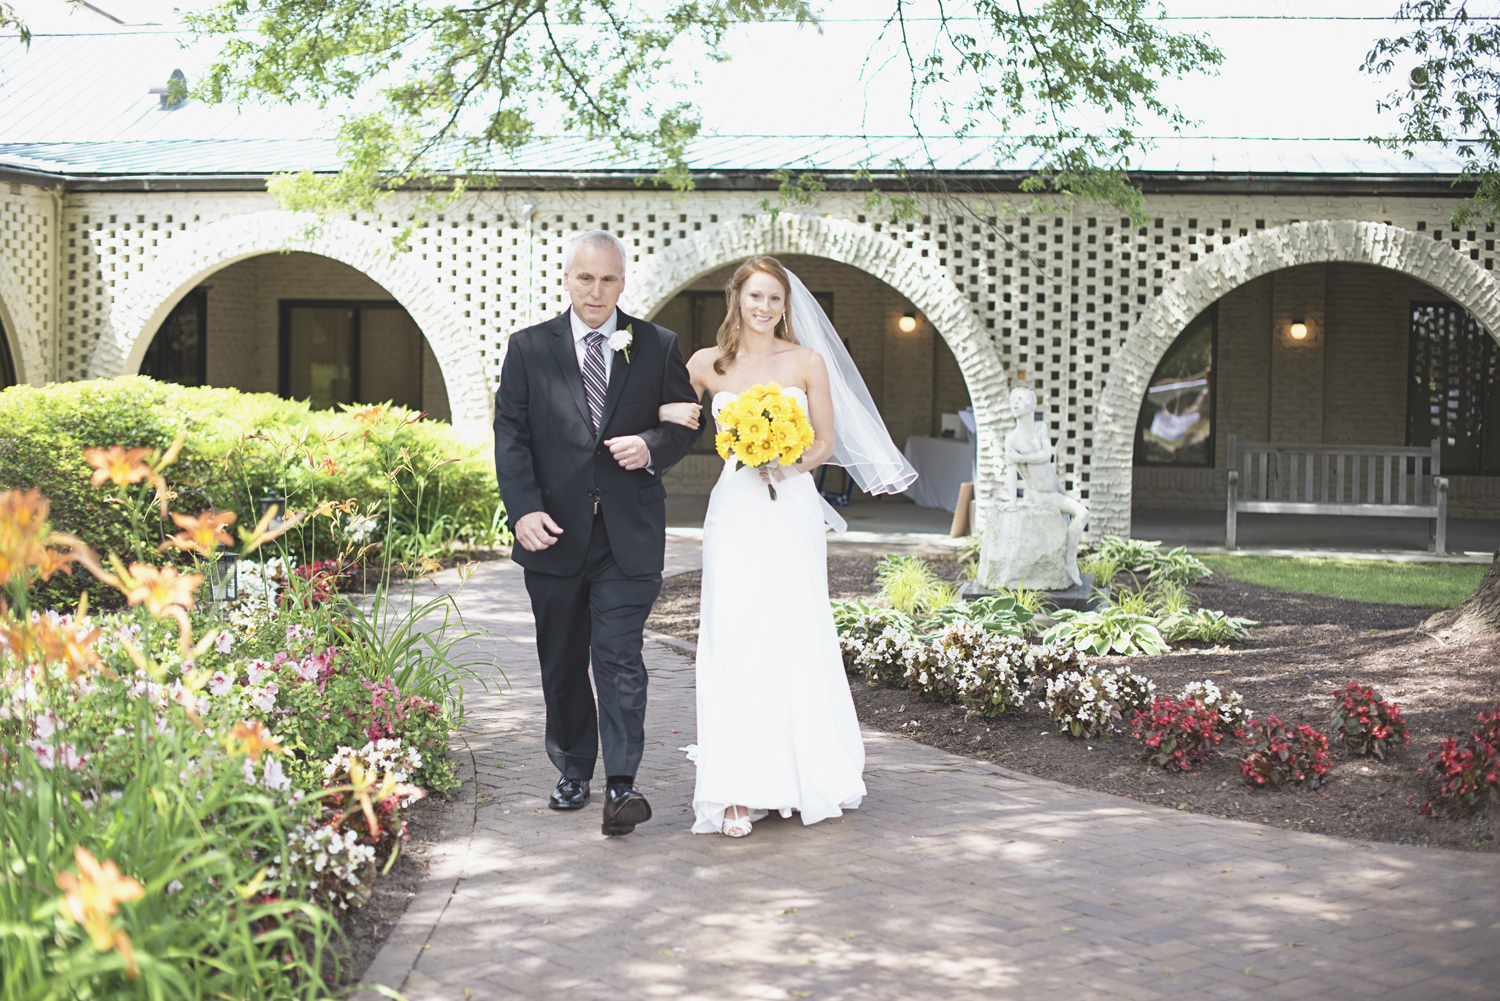 Mariners Museum Wedding | Newport News, Virginia |  Bride in aisle with her father